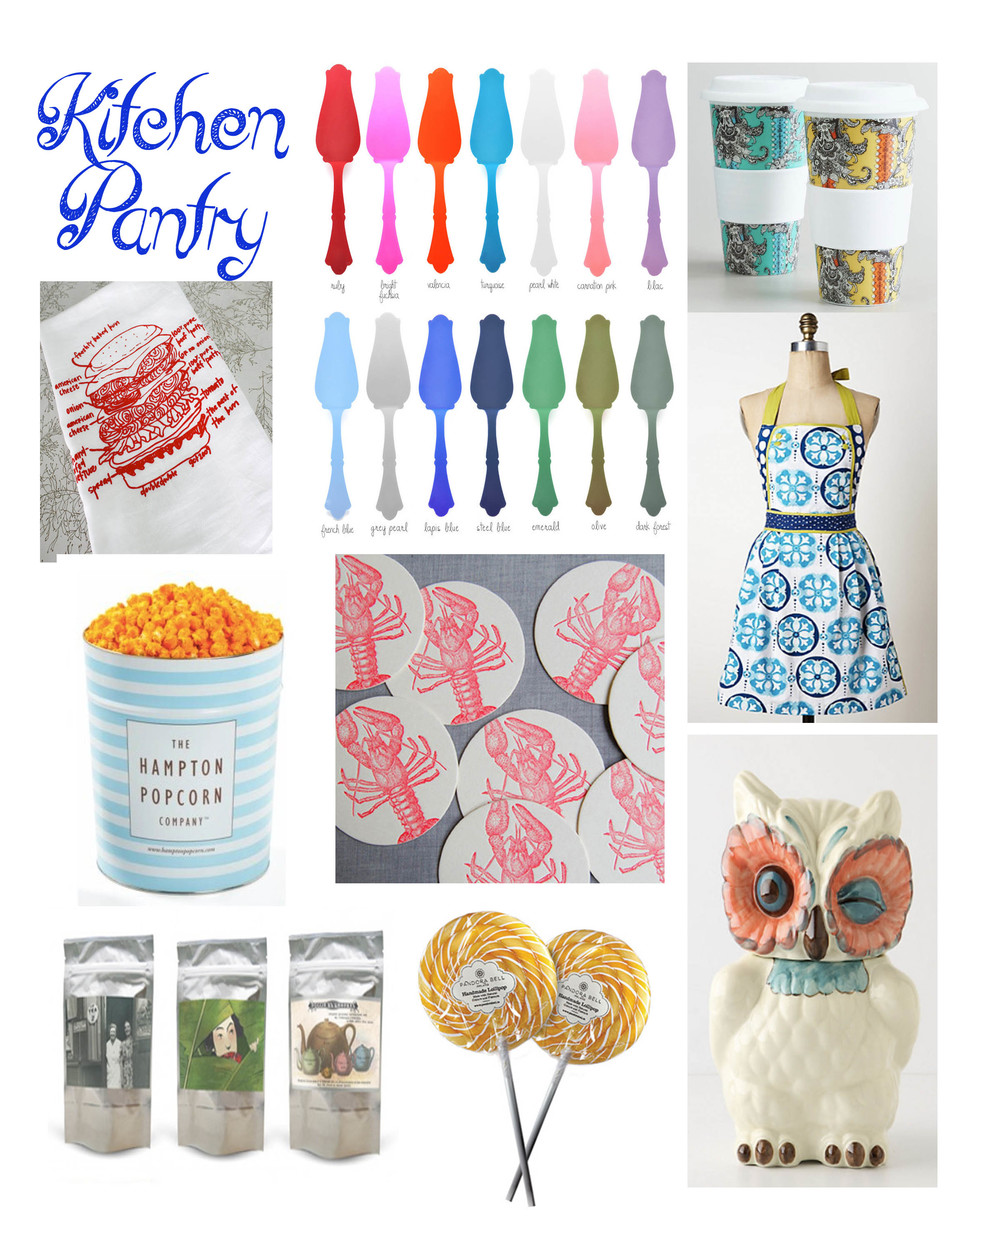 Tart Server at Leif Coffee Cups at World Market Cheeseburger Tea towel at GirlsCanTell Apron at Anthropologie Popcorn at Hampton Popcorn  Coasters at Sesame Letter Press Postcard Tea at Postcard Teas  Lollipops at Pandora Bell Cookie Jar at Anthropologie